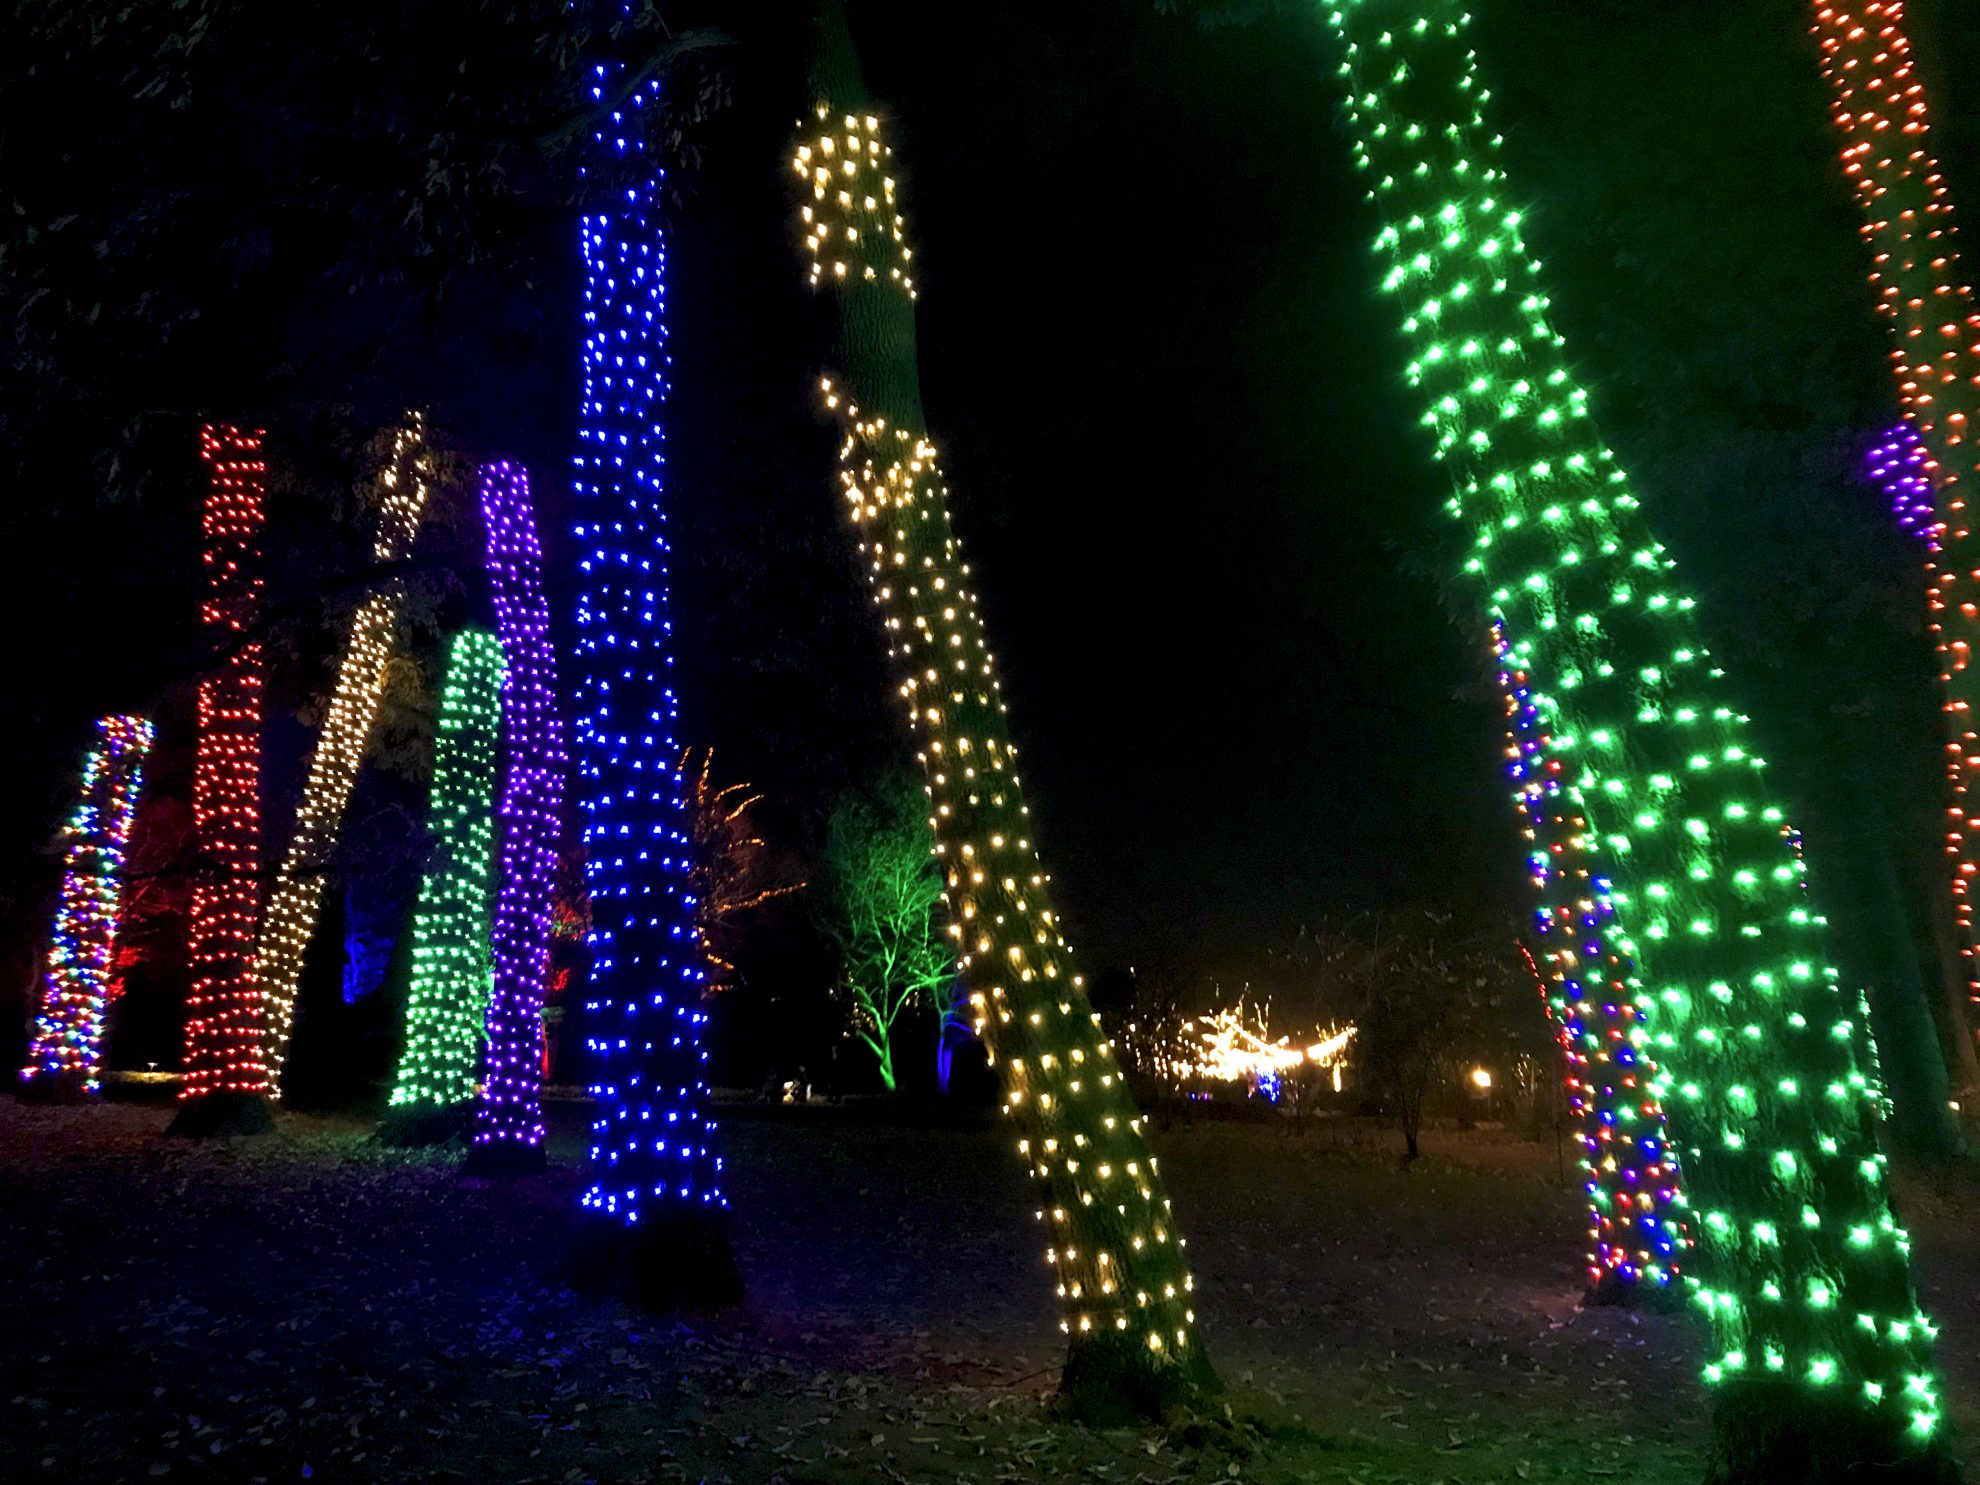 Colorful lighted tree trunks at Longwood Gardens Holiday Lights